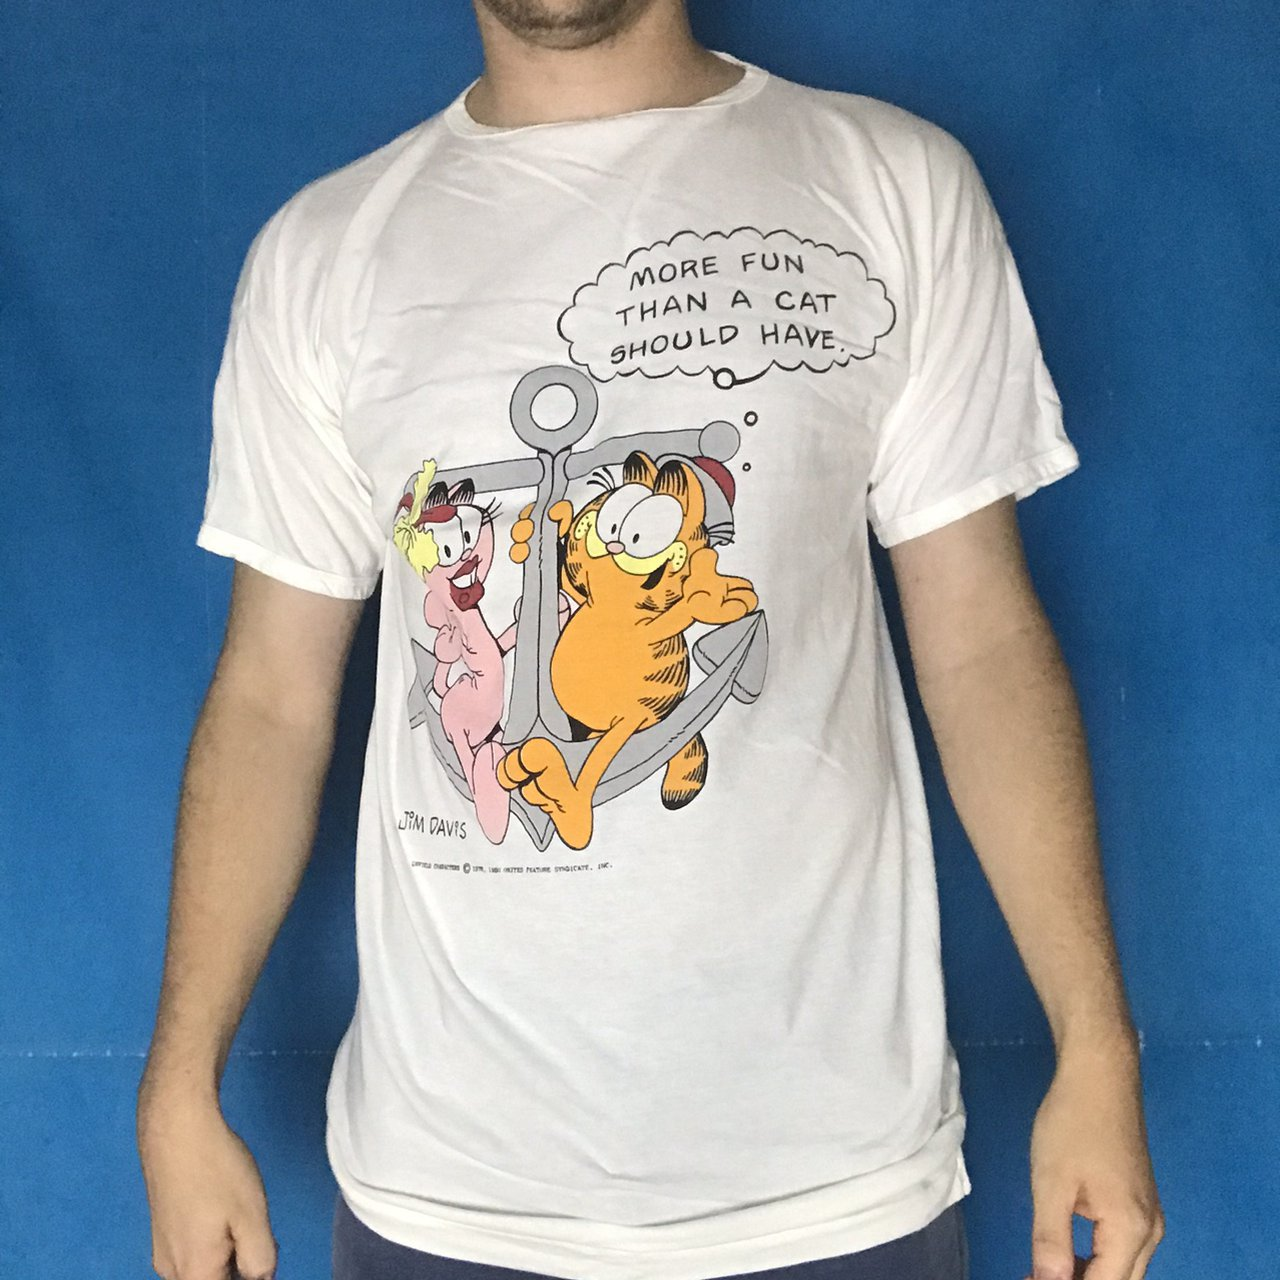 Vintage 70s Garfield T Shirt With Graphic Print And Depop